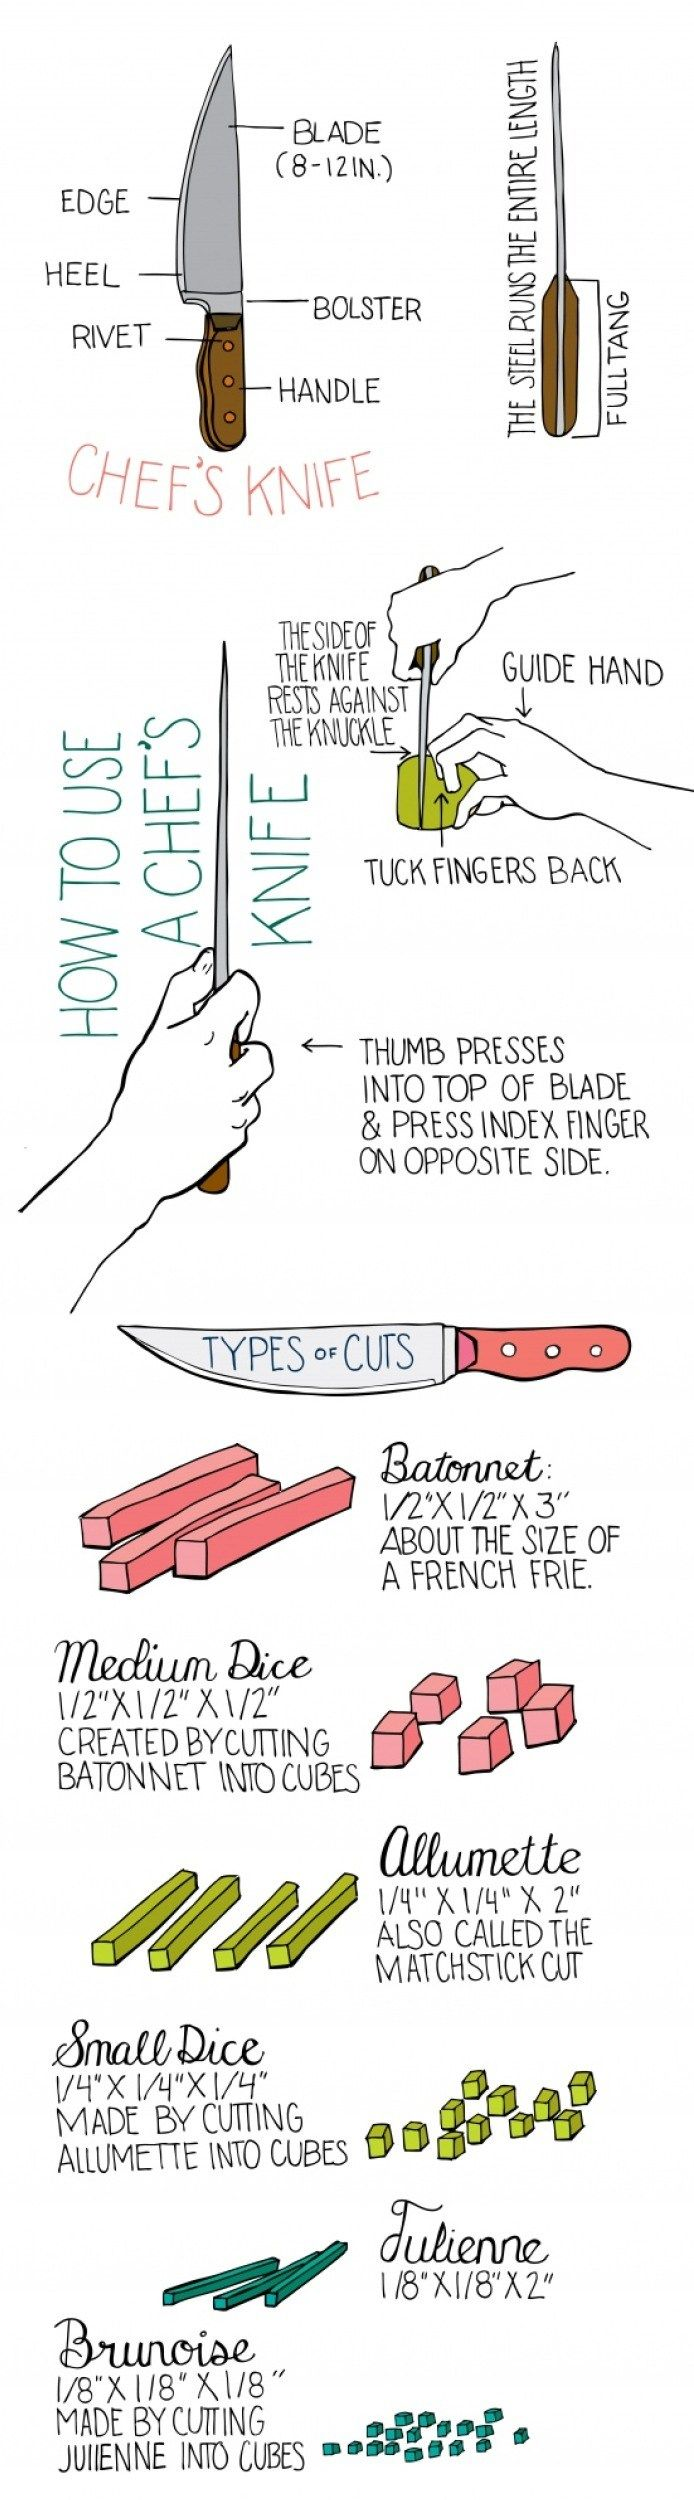 #Knife Skills #Infographic | What size is a julienne? Find out here: http://finedininglovers.com/blog/curious-bites/knife-skills/